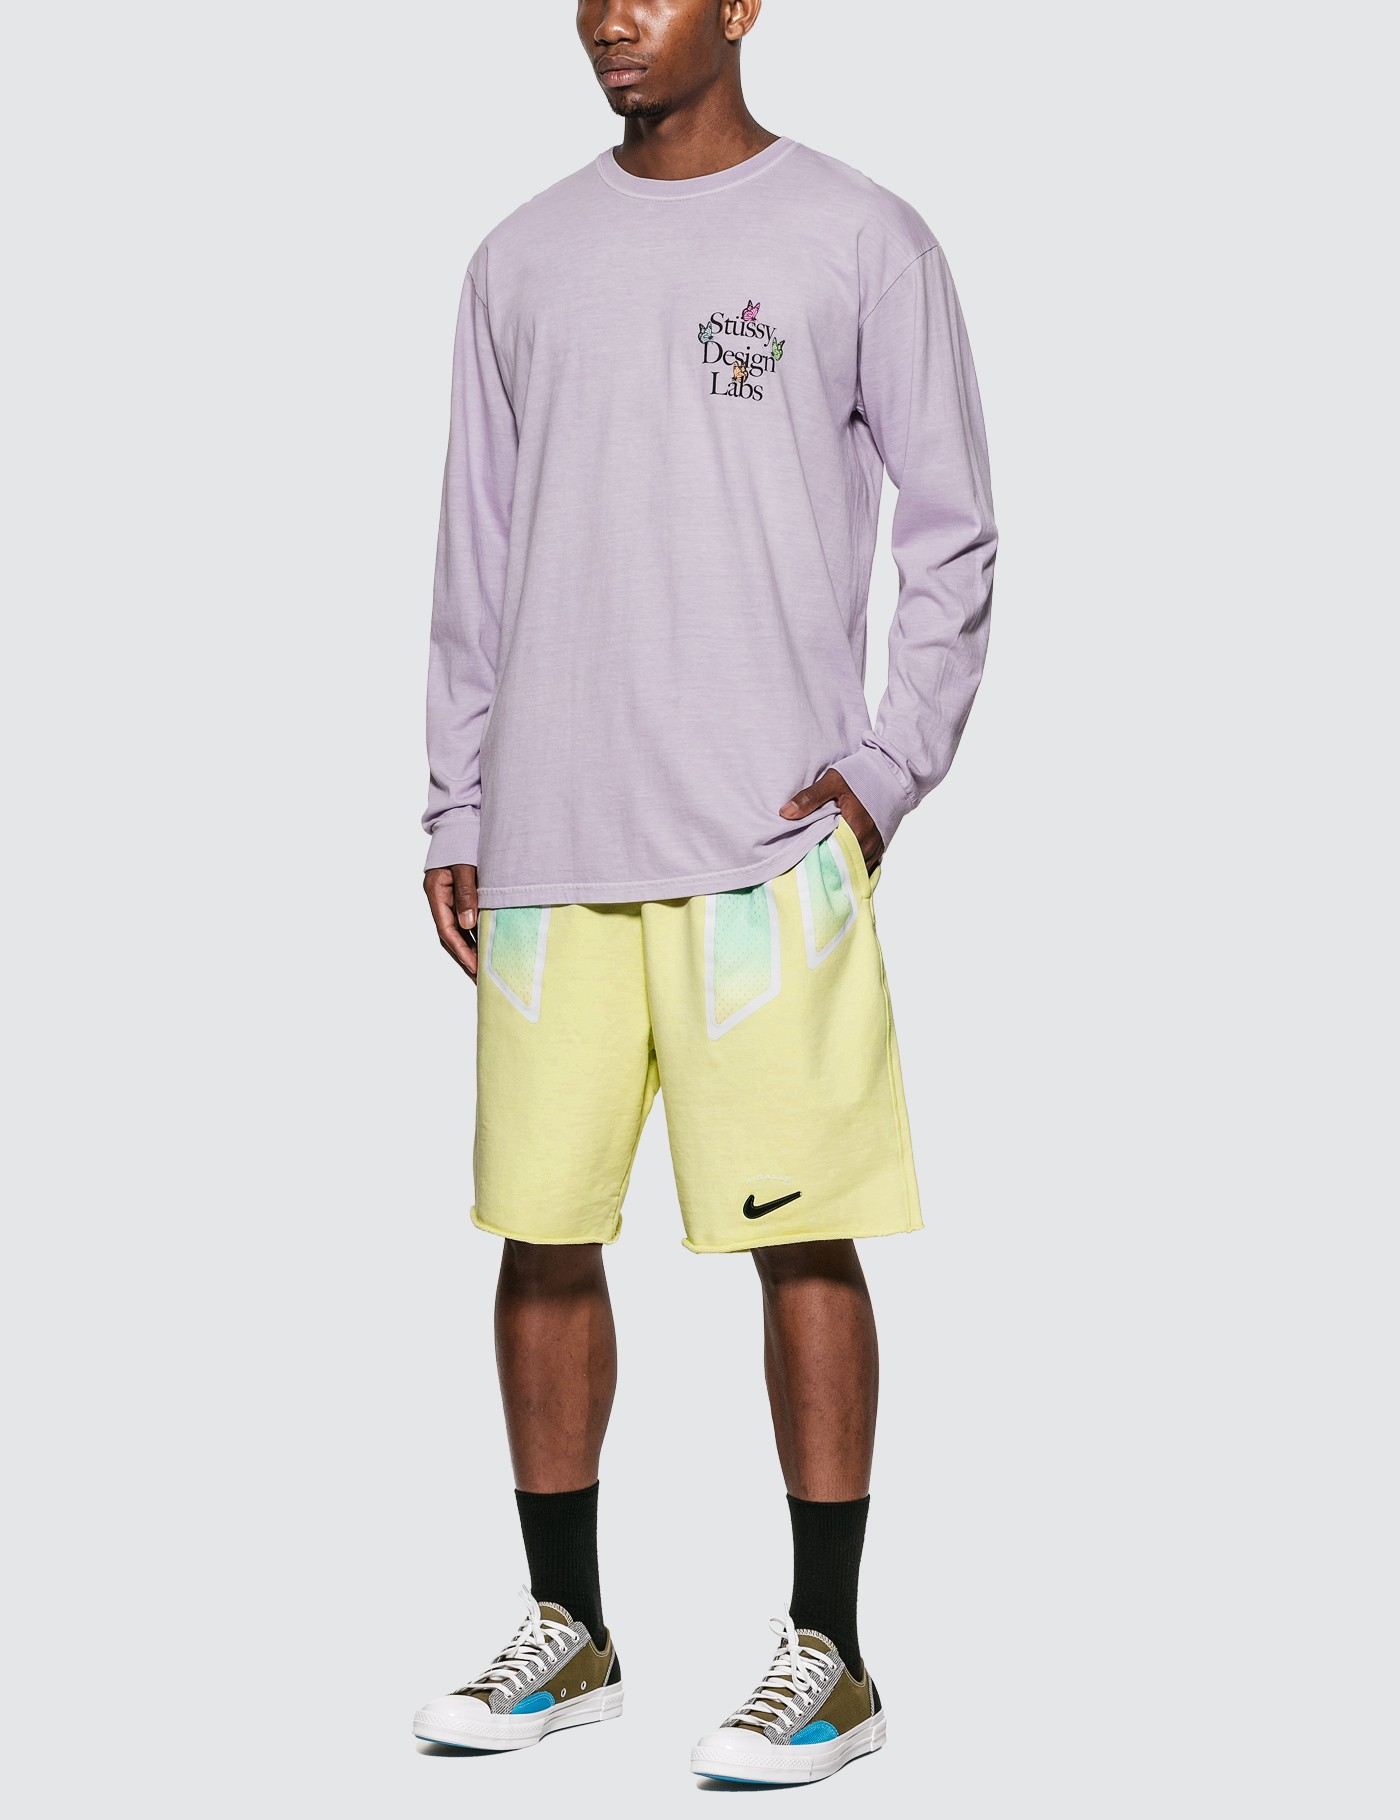 Stussy Design Labs Pigment Dyed Long Sleeve T-Shirt